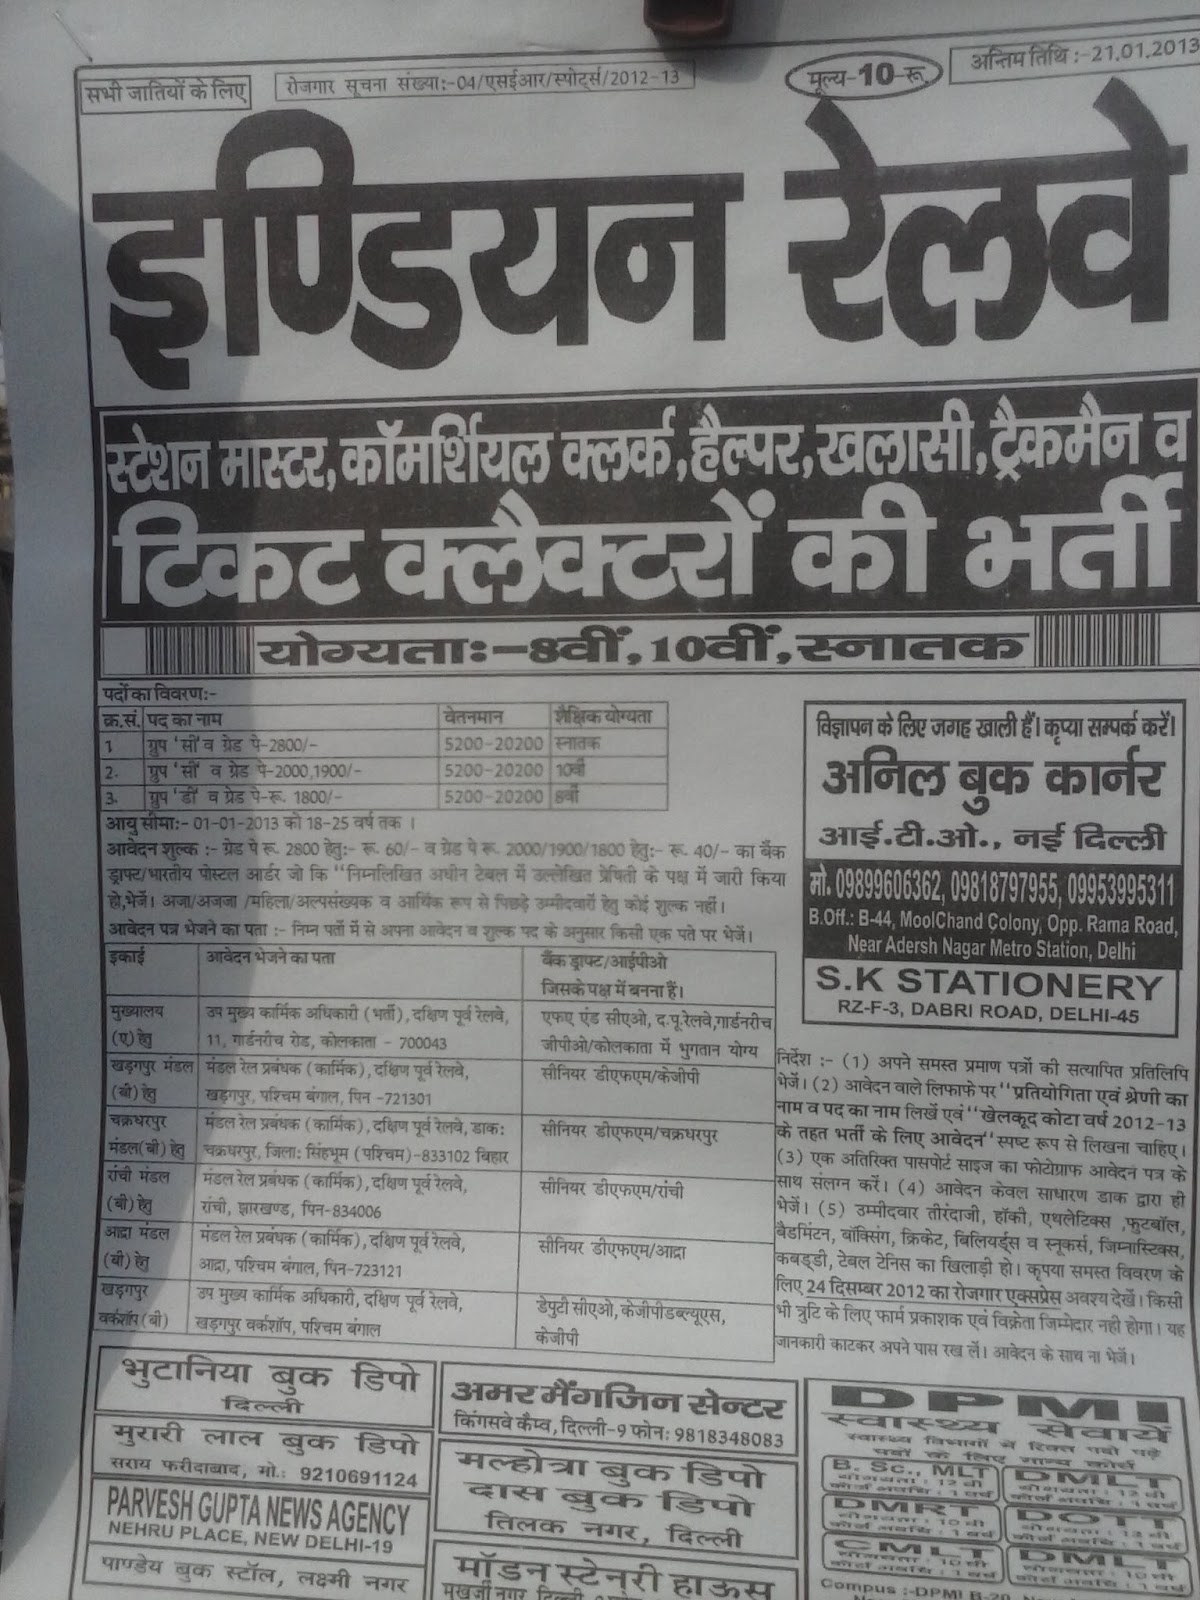 Railway bharti ticket collector, gang man, Track men, Helper bharti in